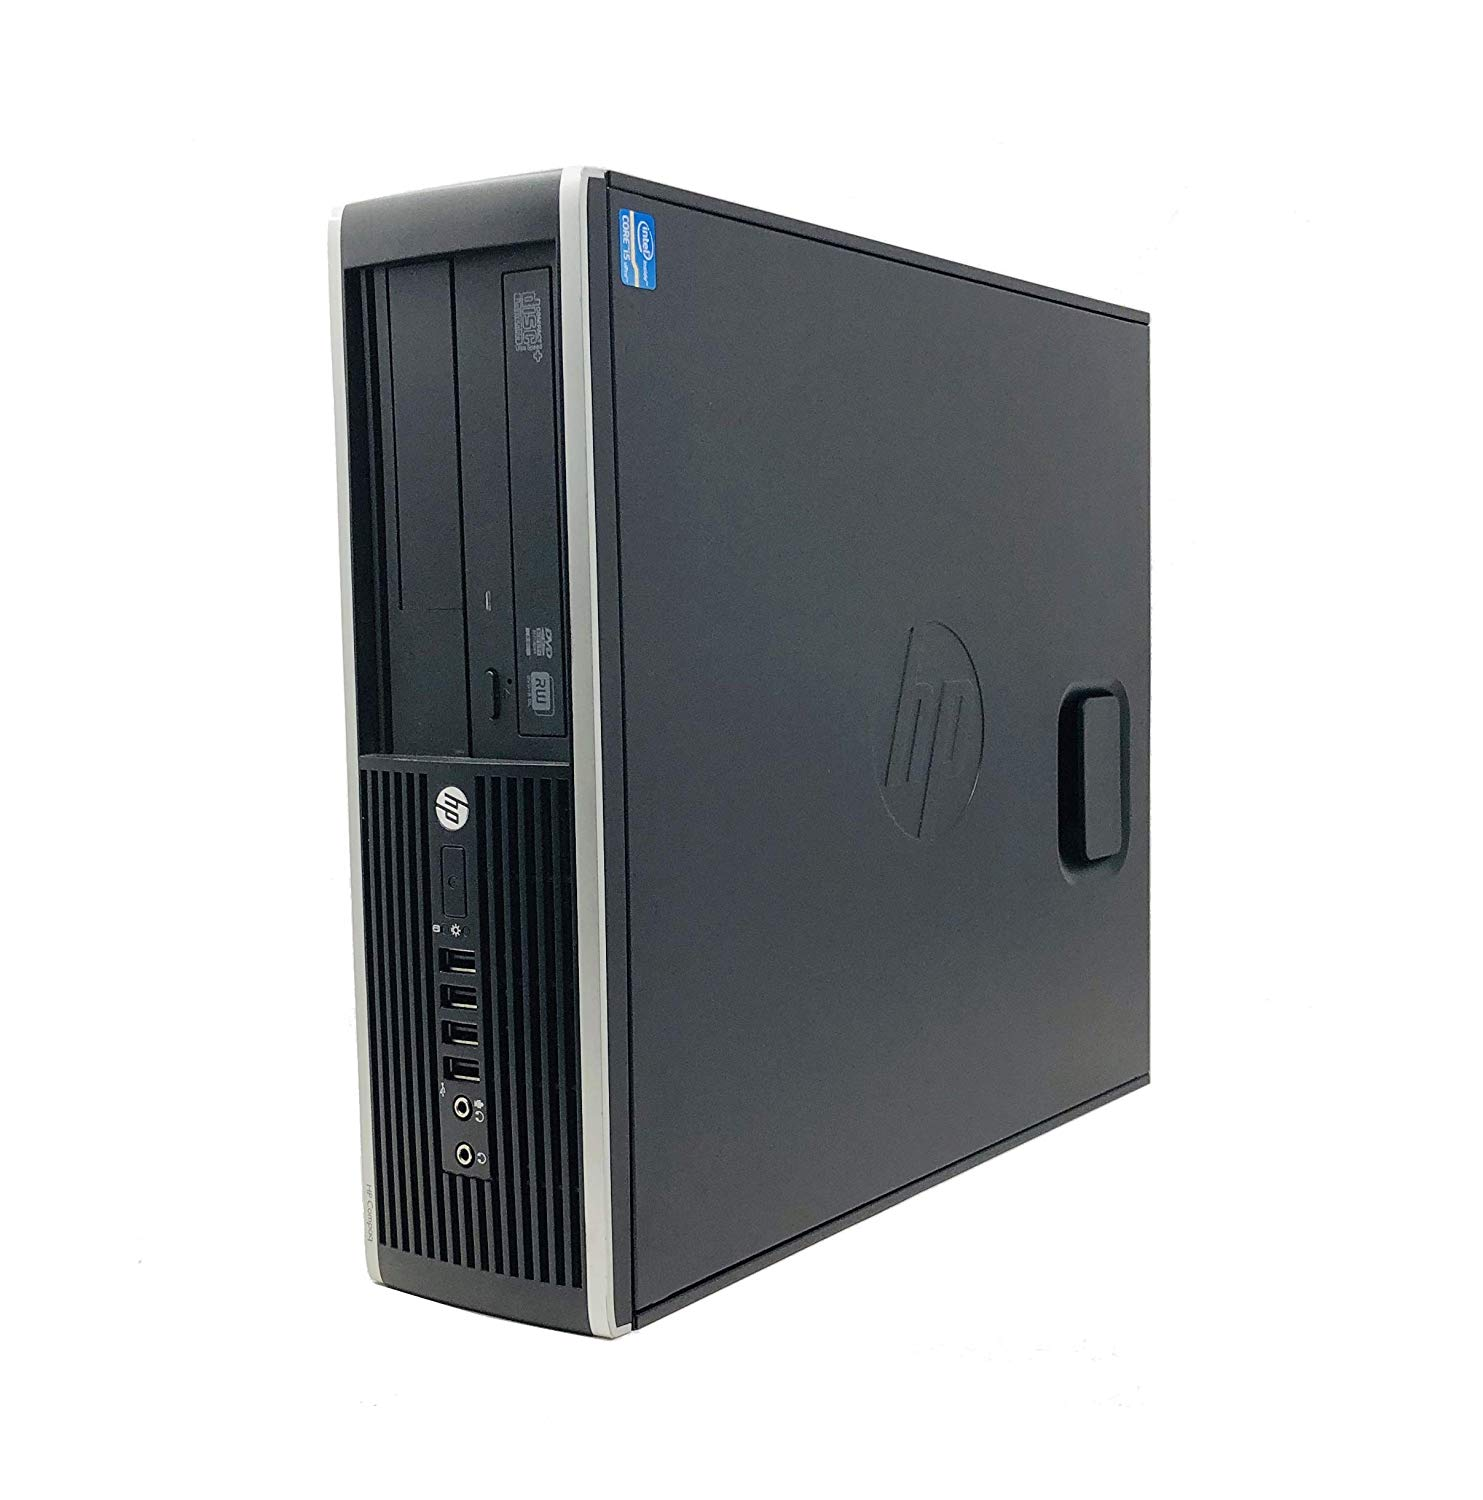 Hp Elite 8200 - Ordenador De Sobremesa (Intel  I5-2400, Sin Lector 8GB De RAM, Disco SSD De 960GB , Windows 7 PRO ) - Negro (Reacondicionado)